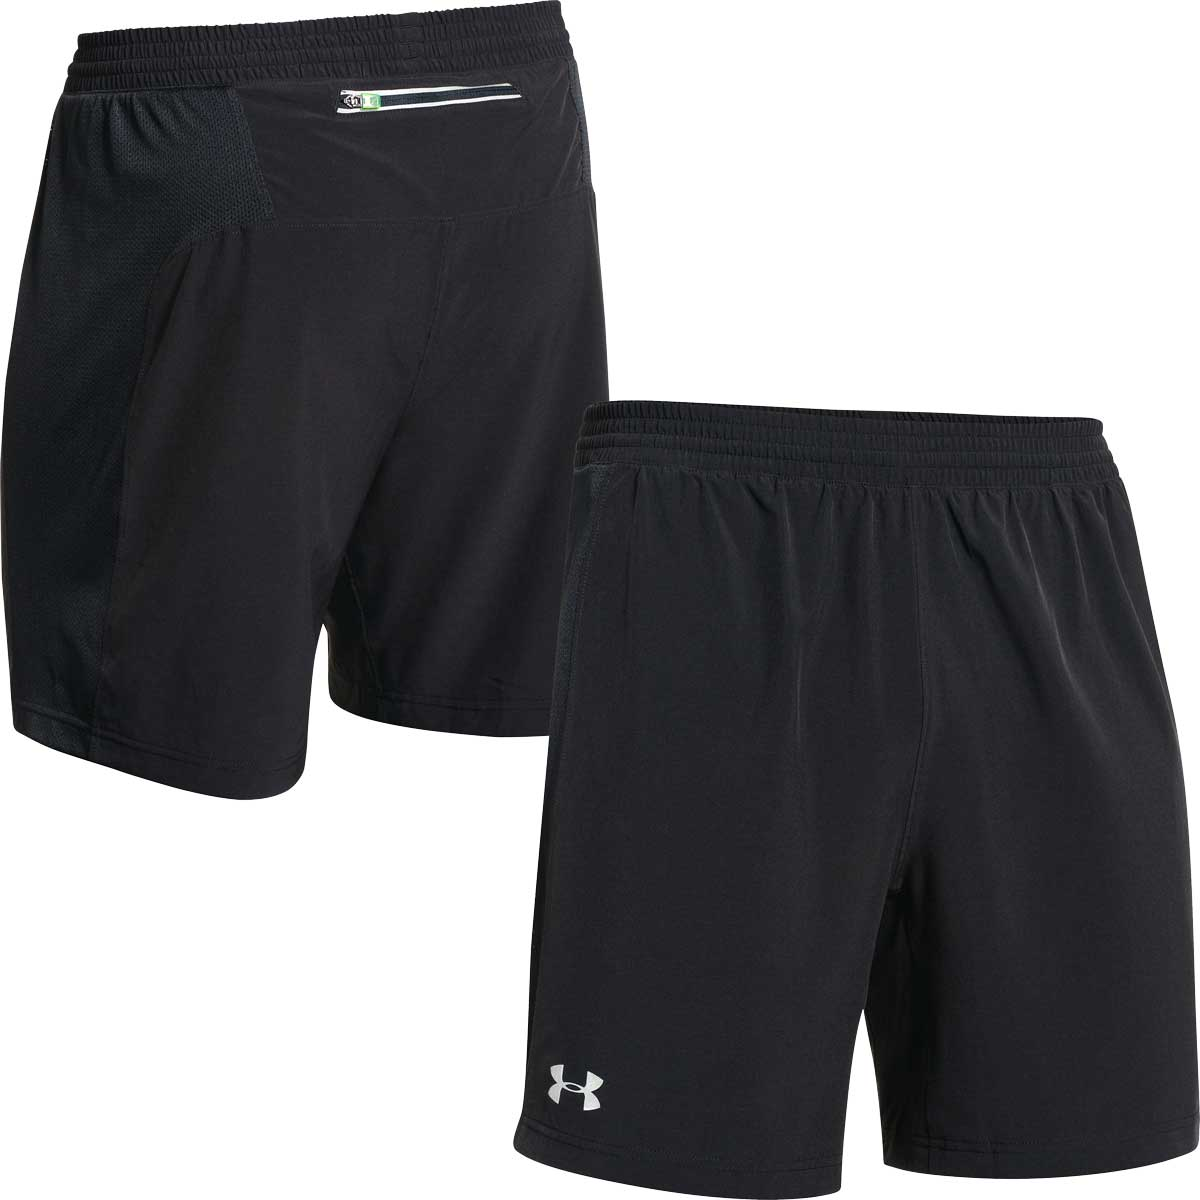 HG Launch Two-in-One Shorts Storlek S